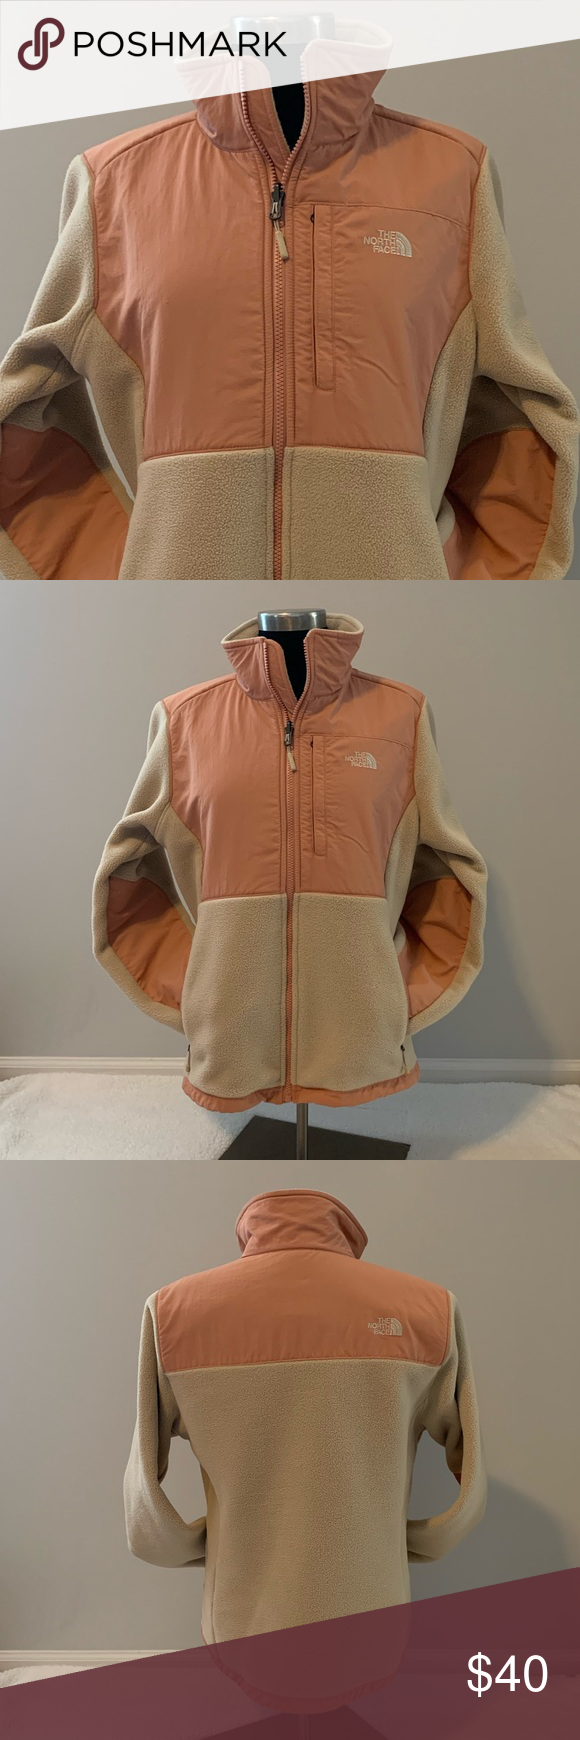 The Northface Jacket Size Medium In Excellent Condition Like A Peach And Tan Color Love This Jacket The Nort North Face Jacket Jackets For Women Clothes Design [ 1740 x 580 Pixel ]